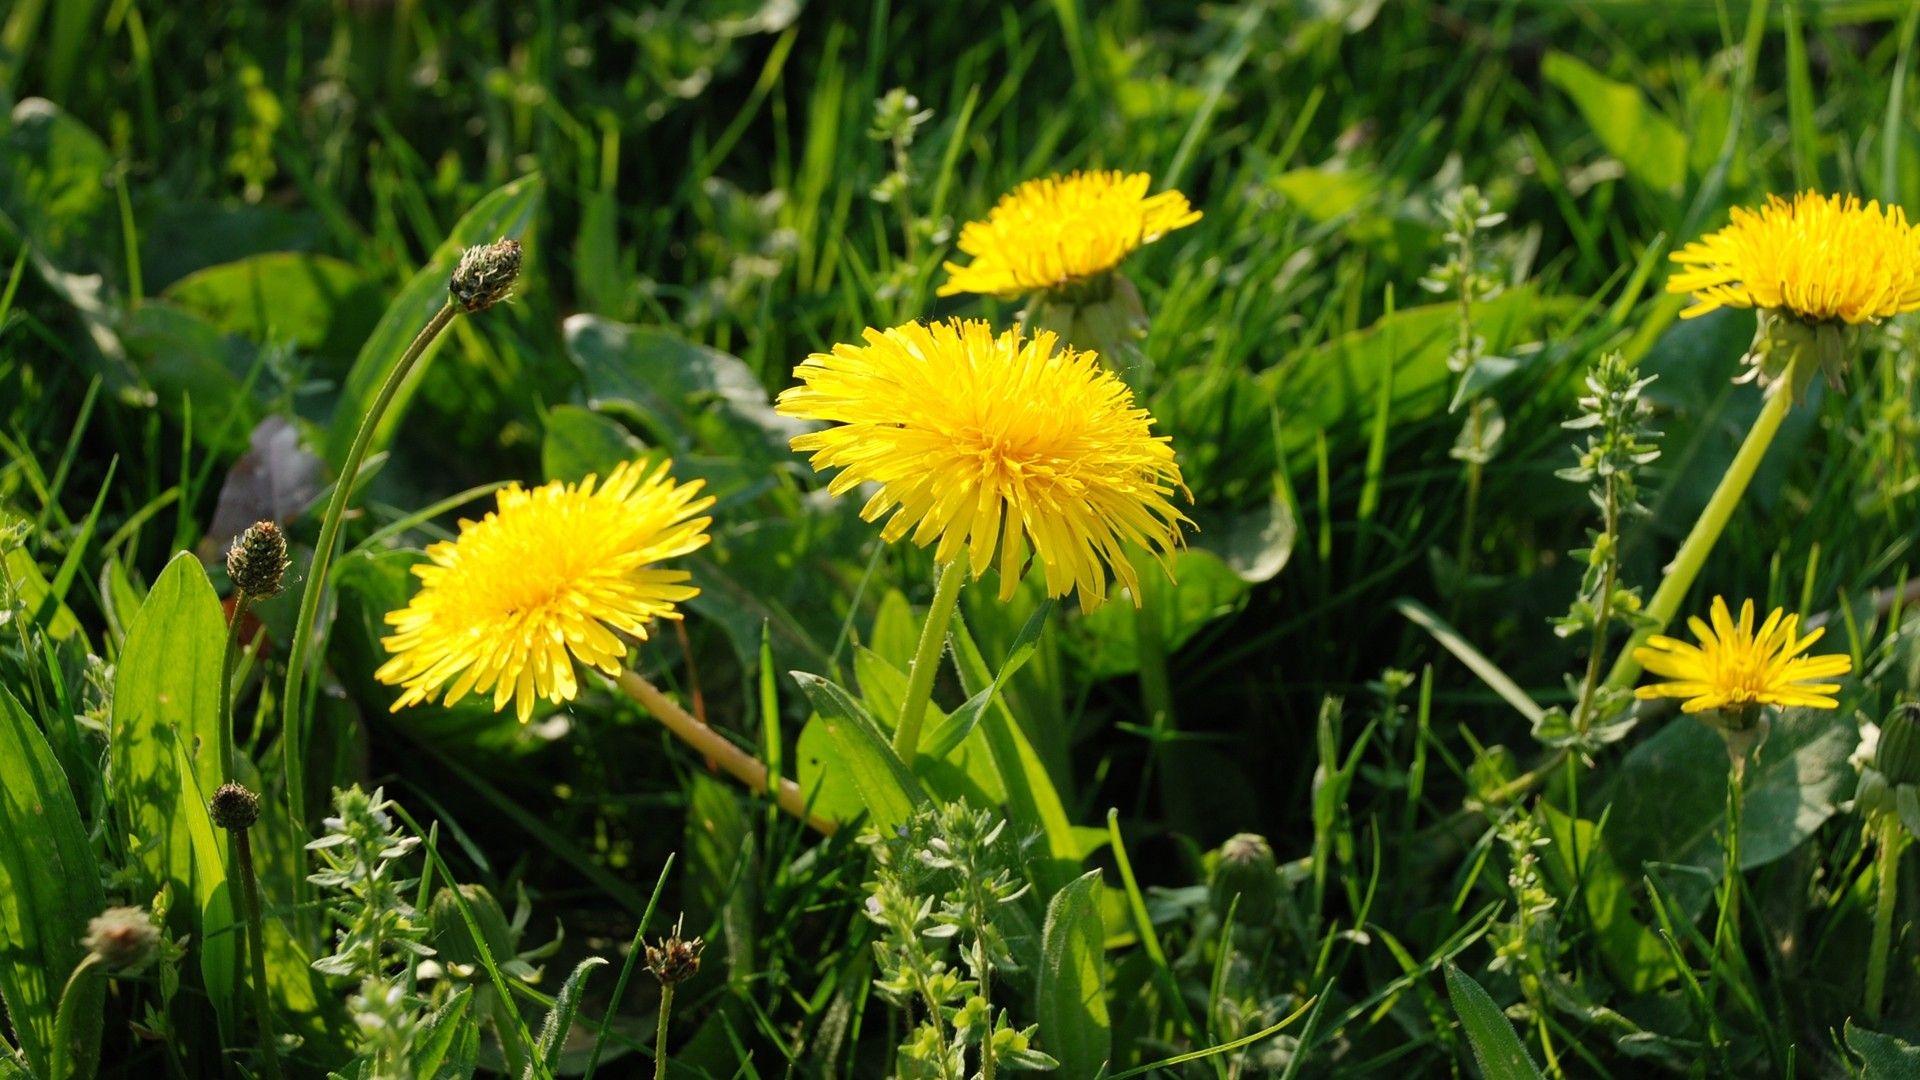 dandelion-flower-wallpaper-1920x1080-1522